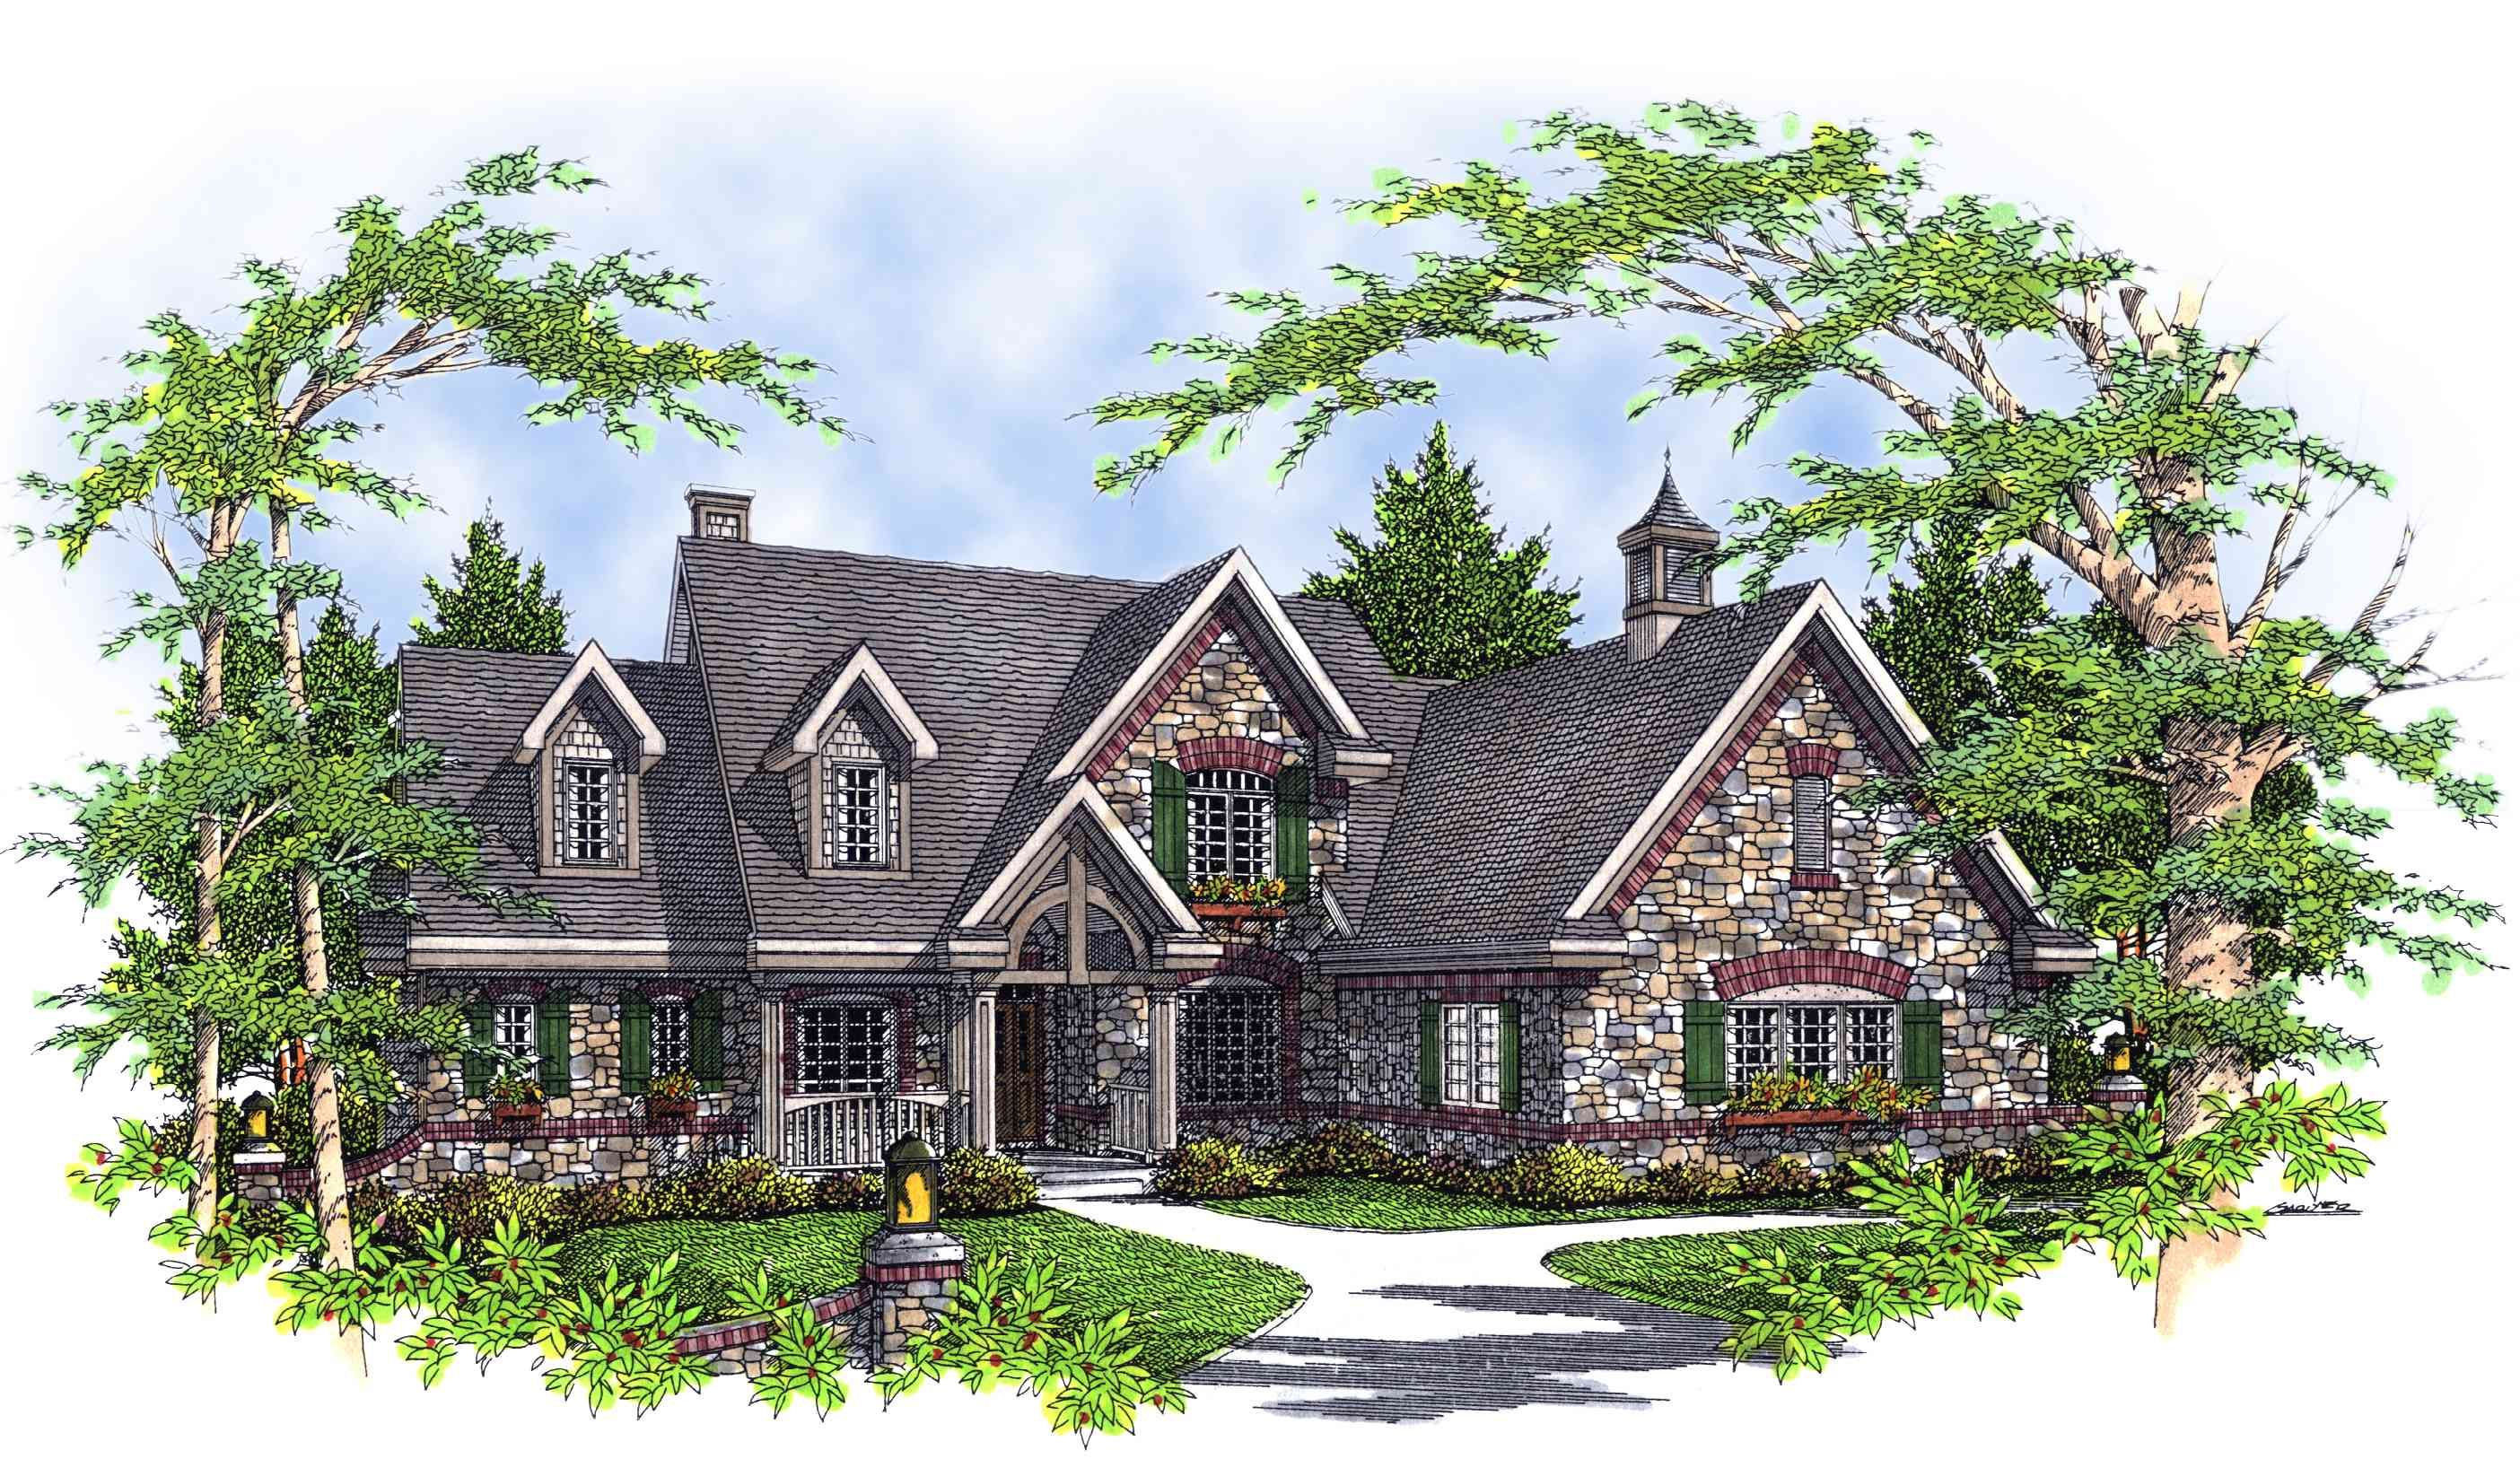 Plan 8968ah Stone And Shaker Siding Modern Style House Plans French Country House Plans Architectural House Plans